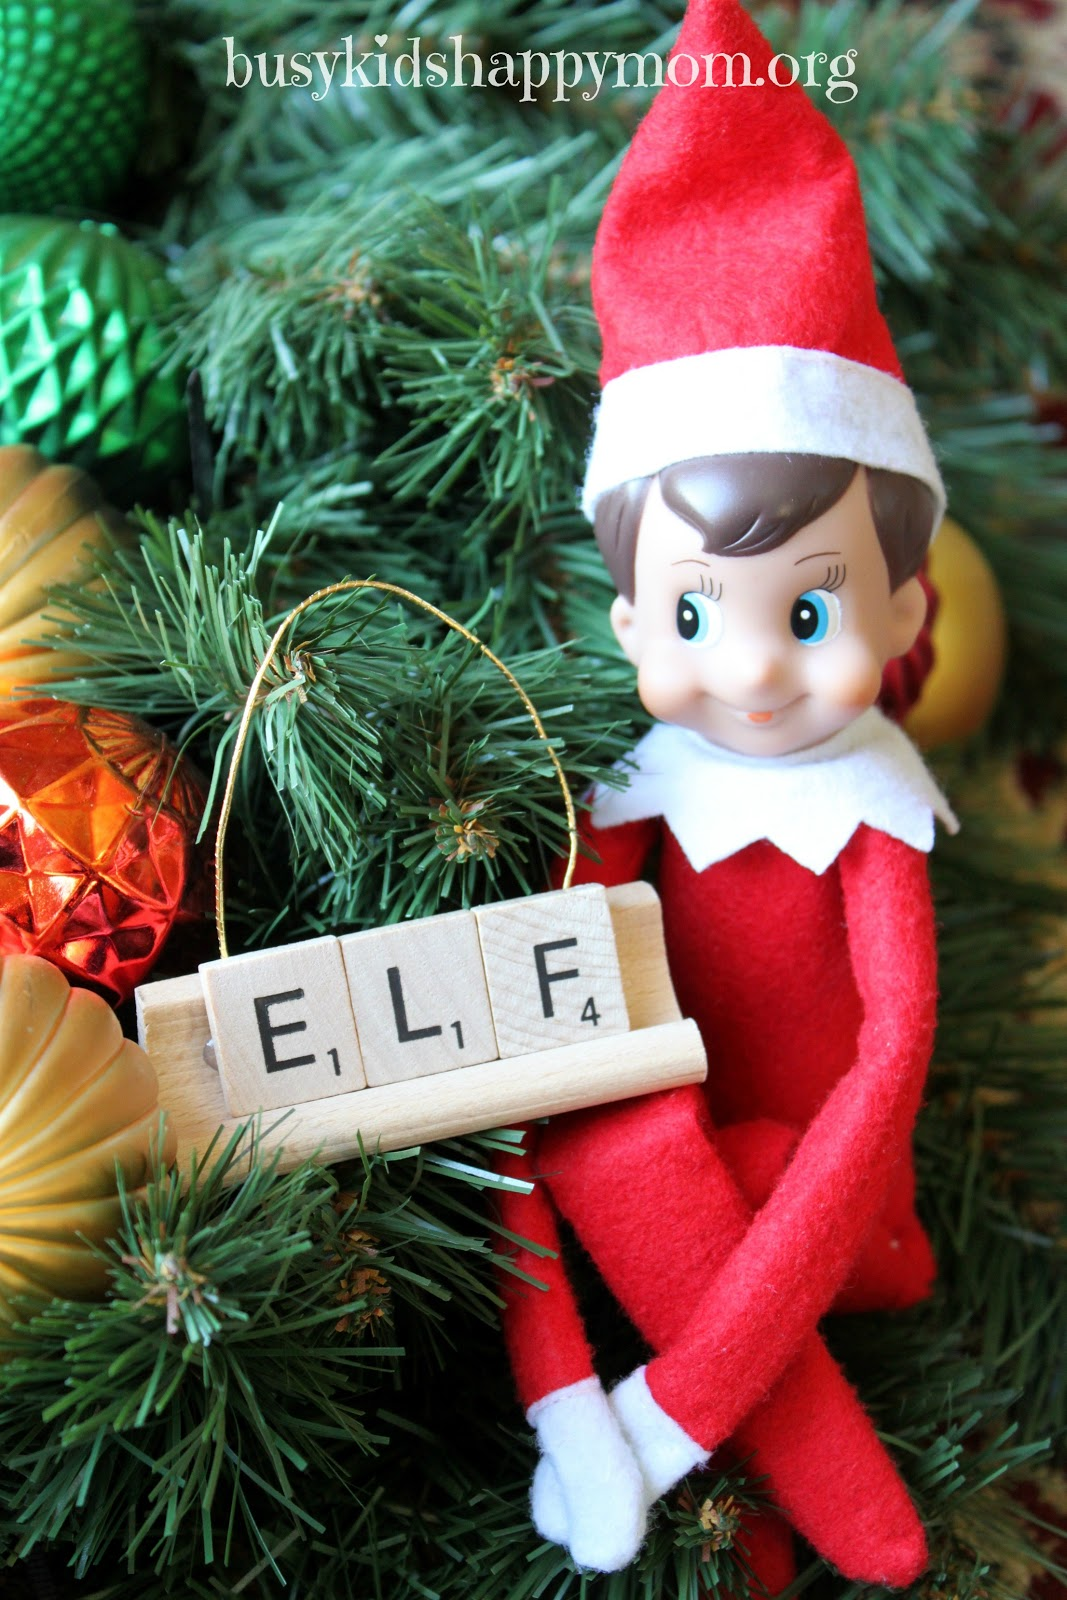 Stuck? Need new ideas for your Elf-on-the-Shelf?